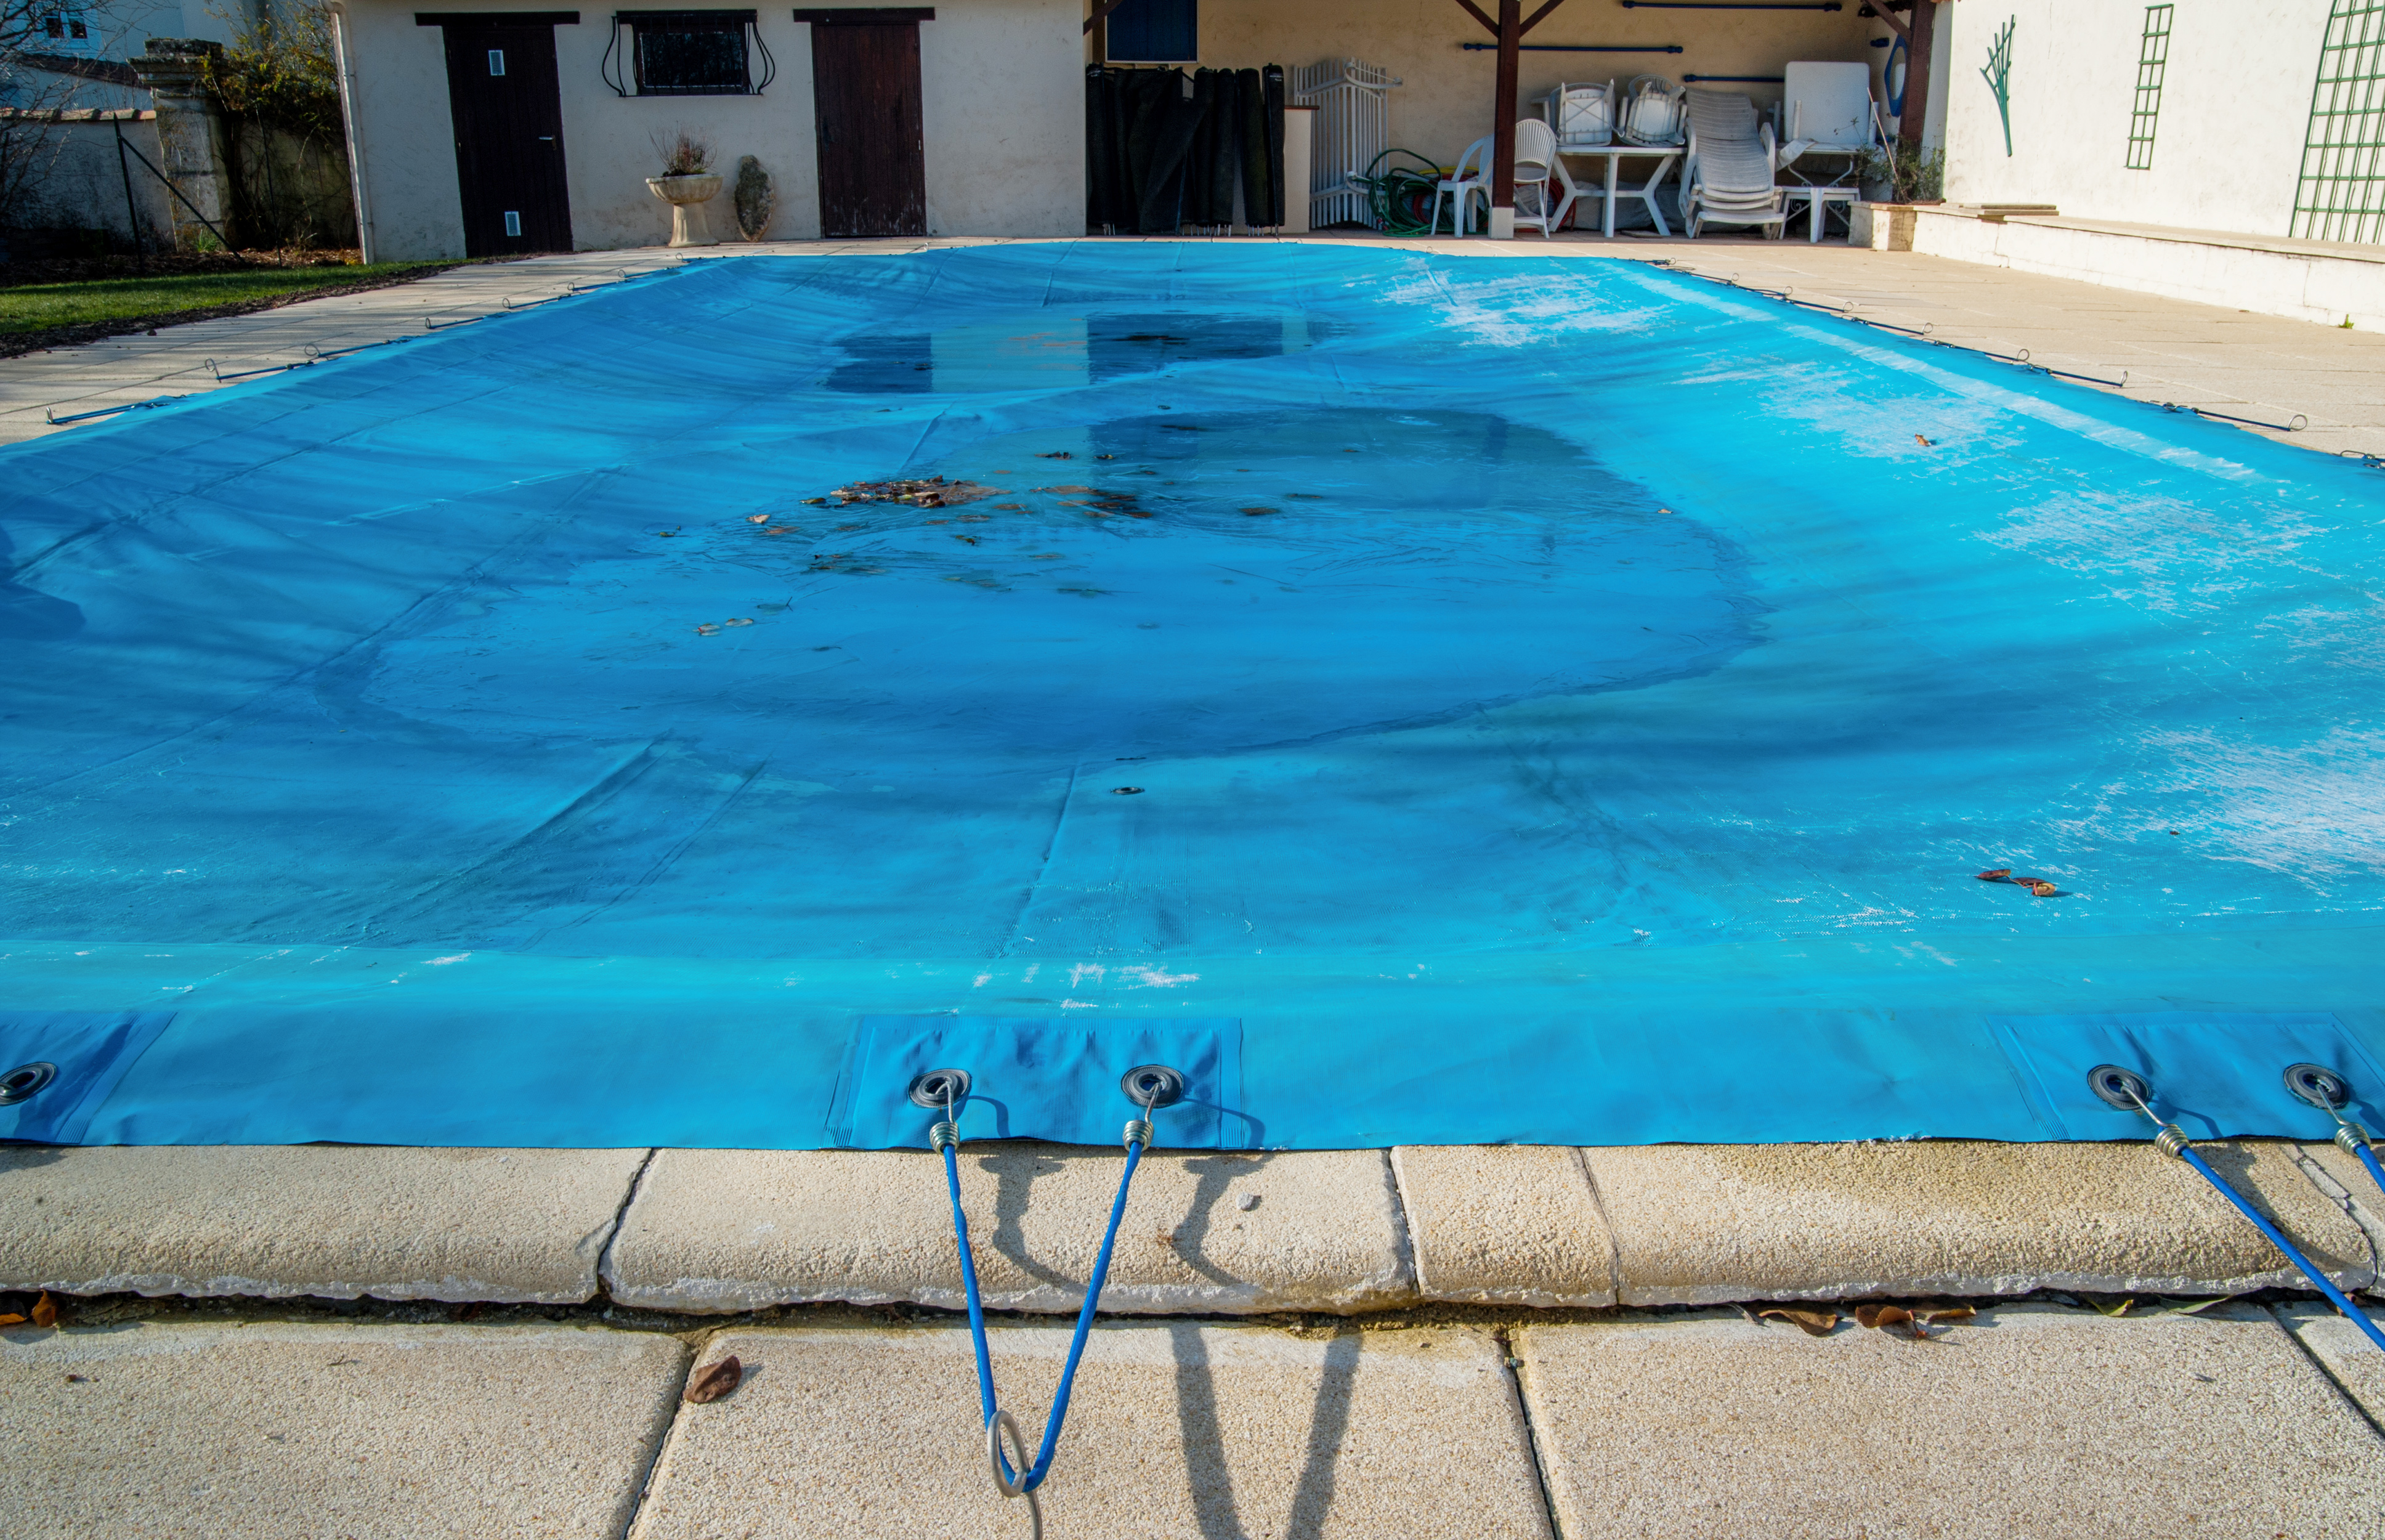 10 Things You Need to Know When Opening Your Inground Pool